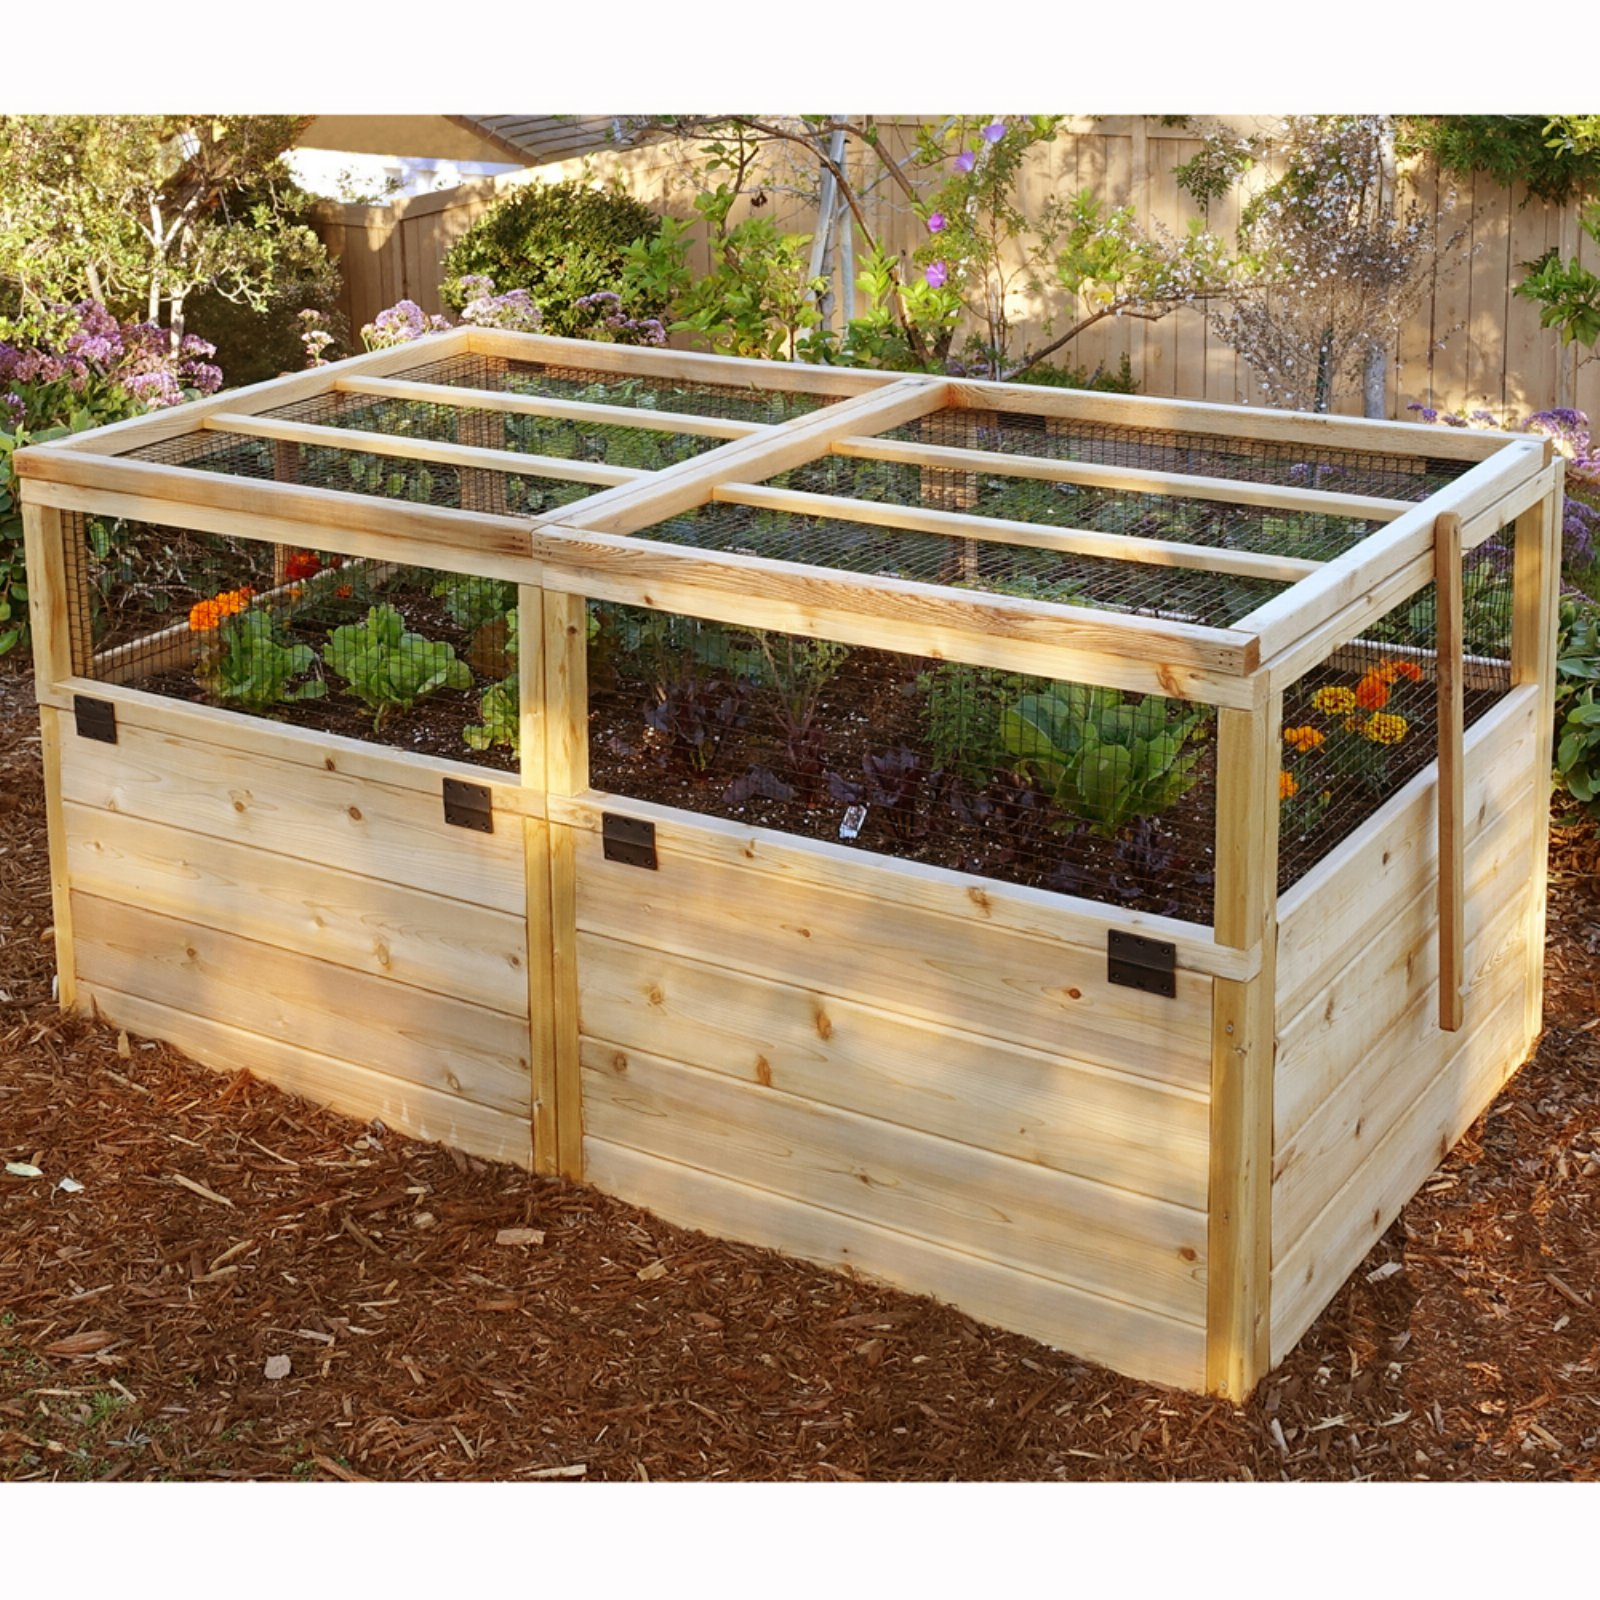 Outdoor Living Today Raised Cedar Garden Bed with Trellis/Lid - 6 x 3 ft.